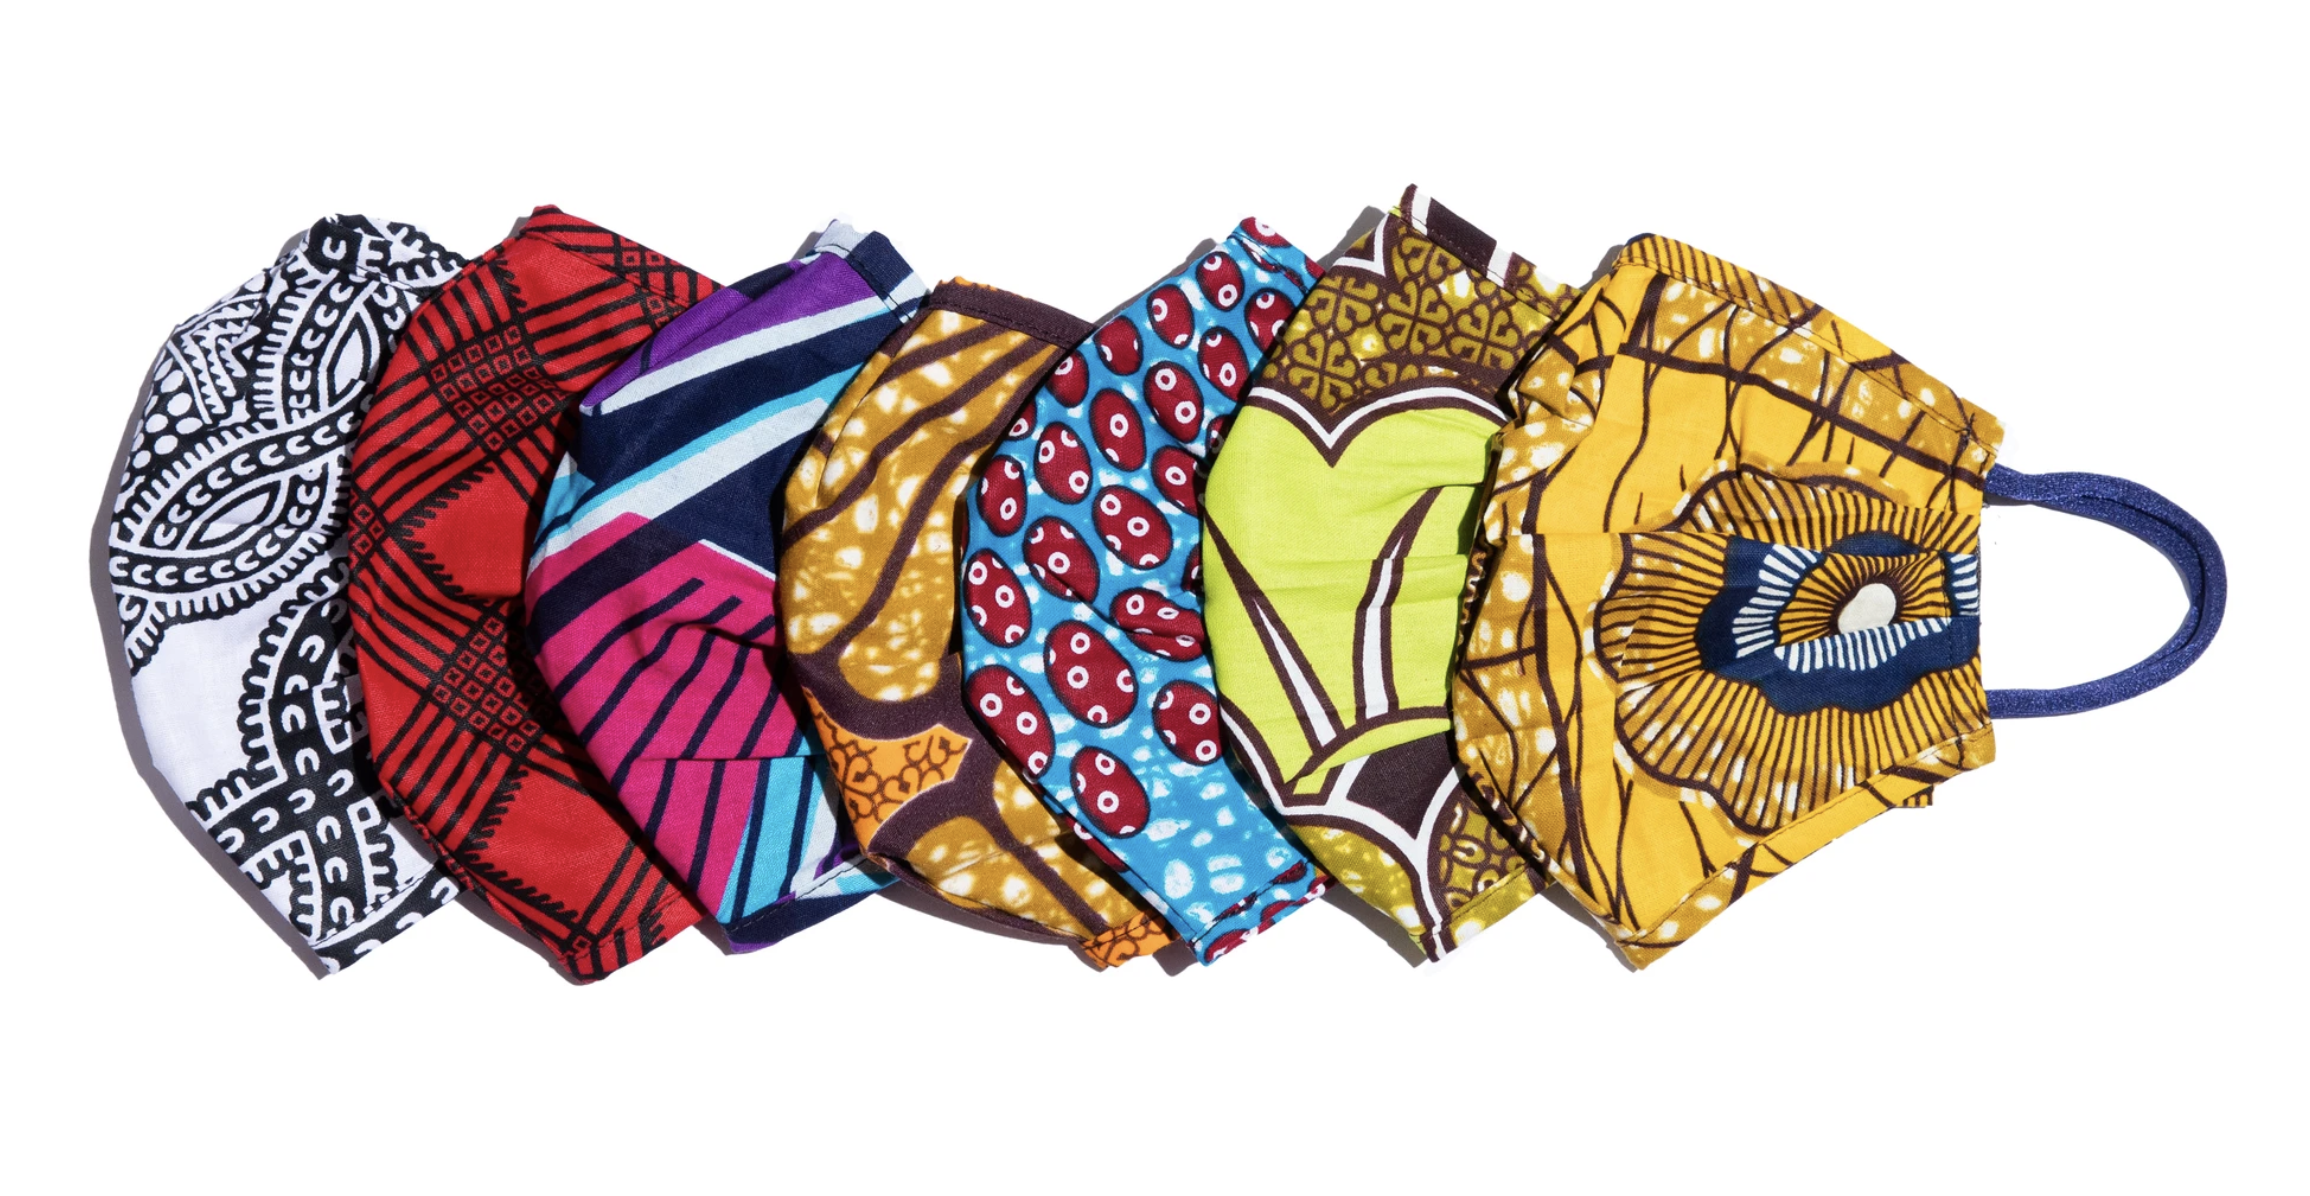 Masks in various colorful prints